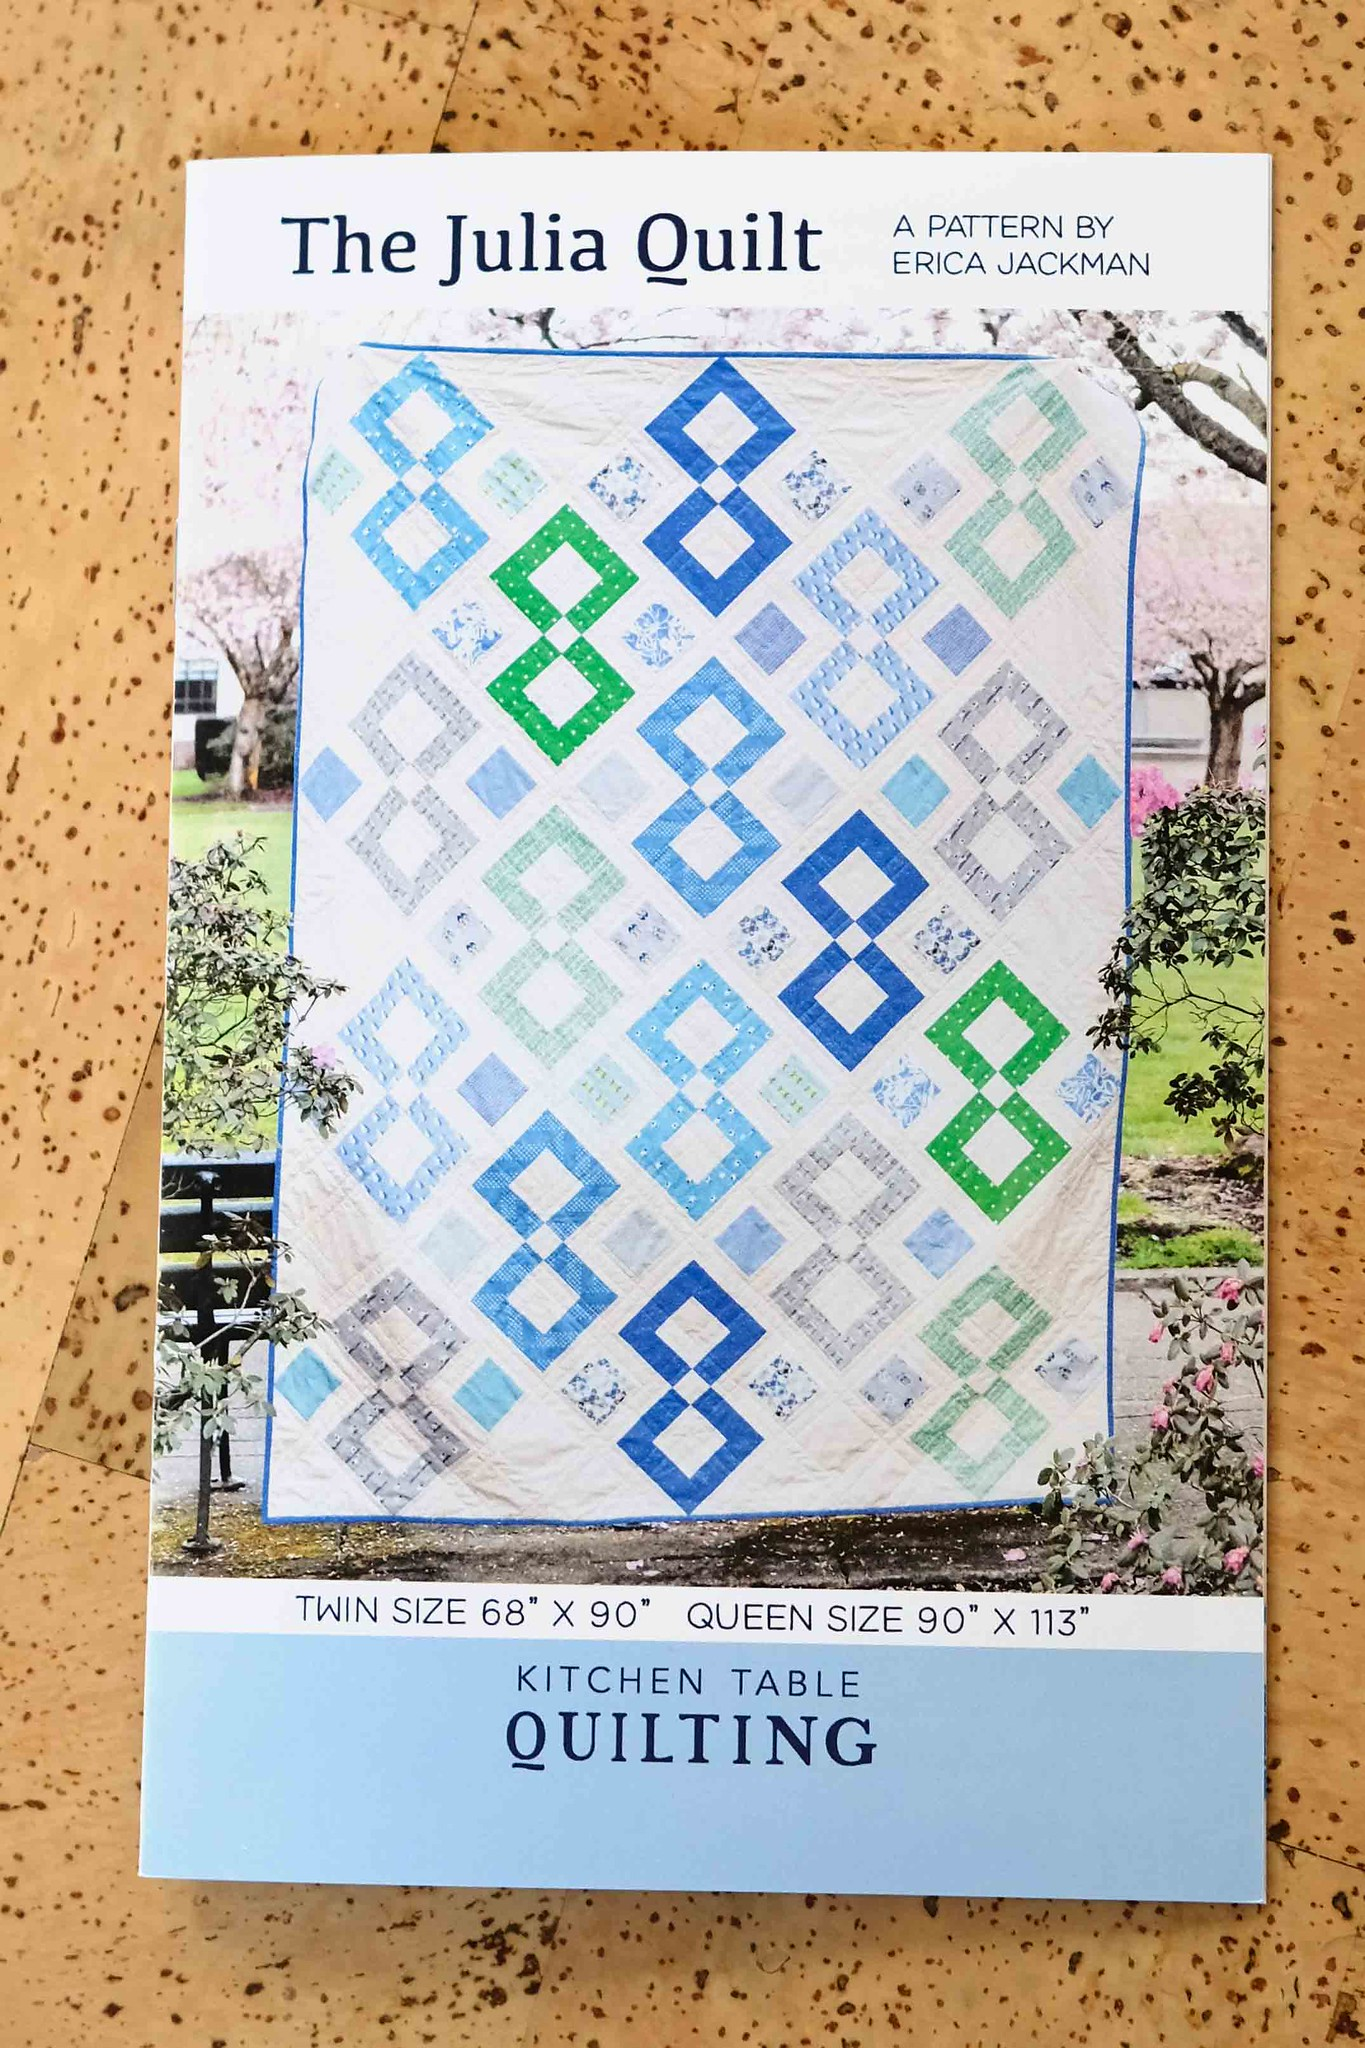 The Julia Quilt Print Pattern - Kitchen Table Quilting